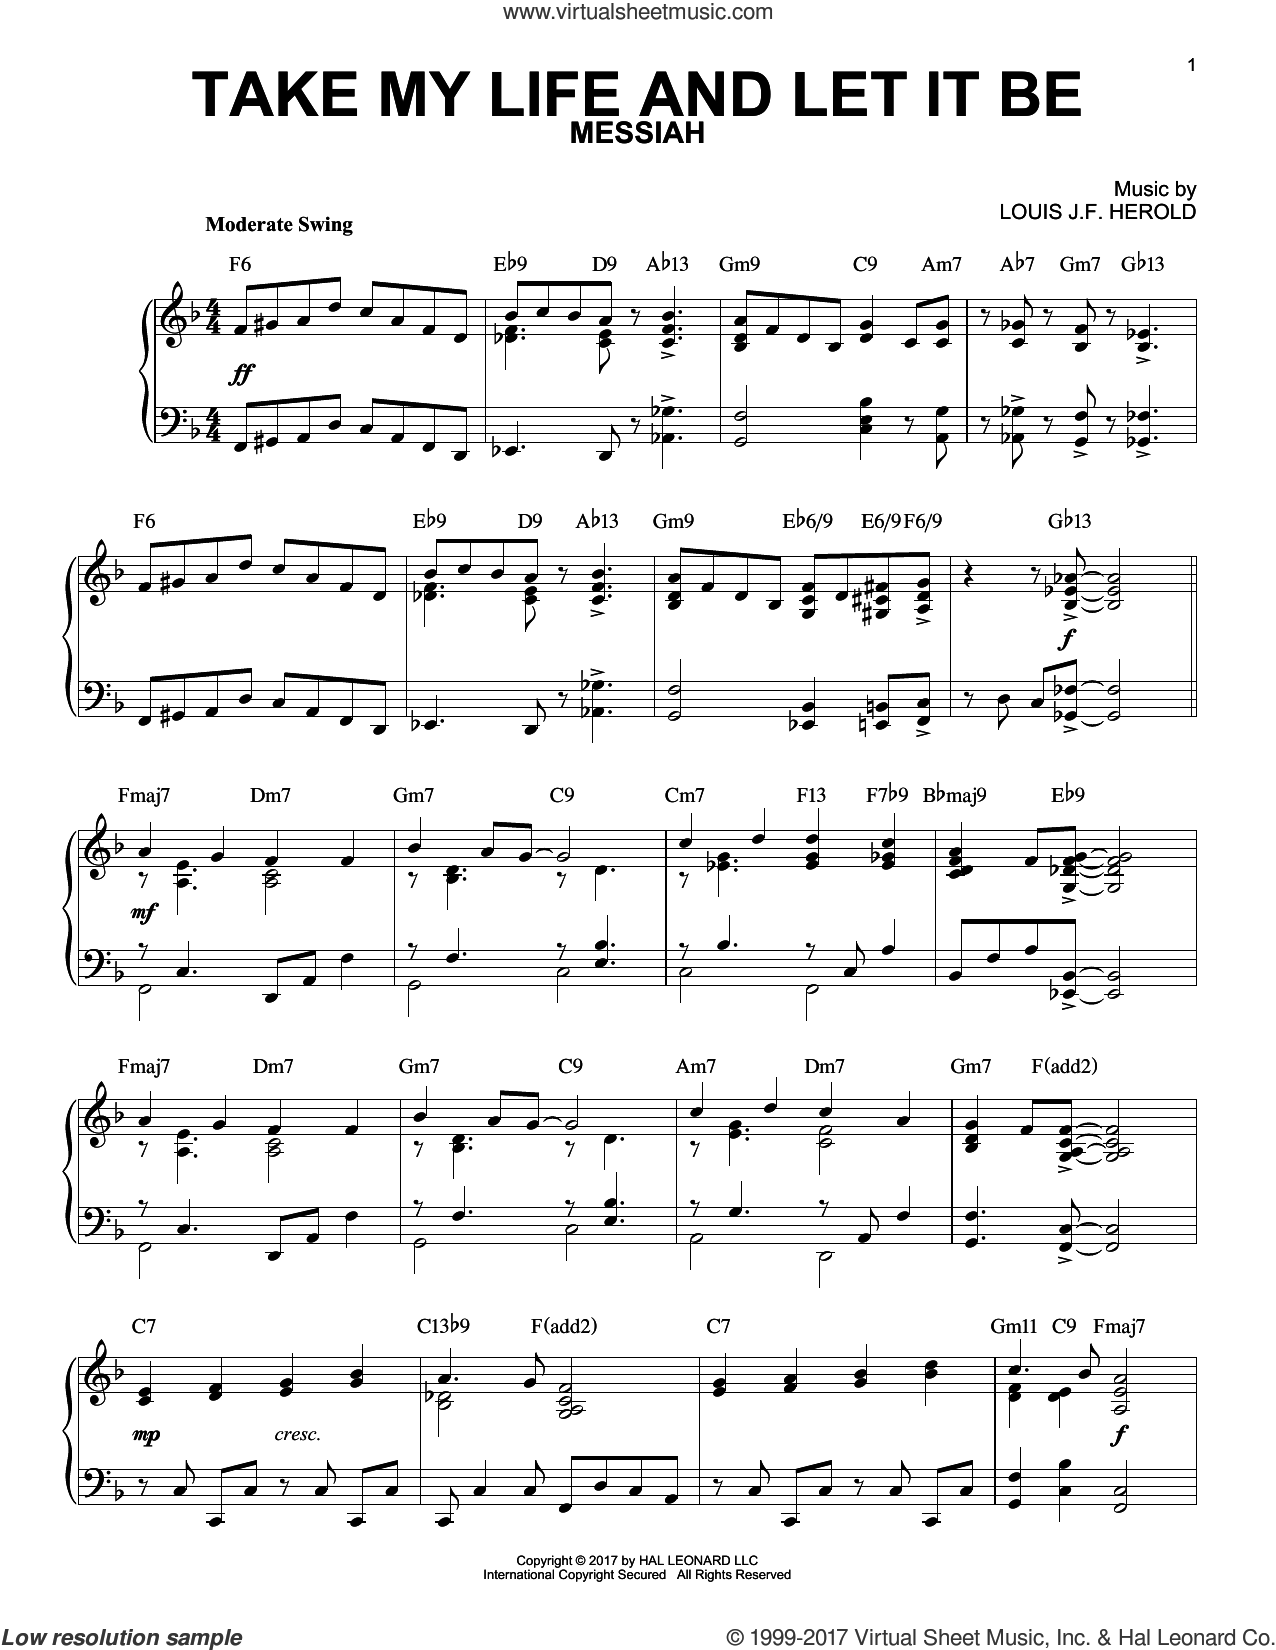 Take My Life And Let It Be [Jazz version] sheet music for piano solo by George Kingsley, Frances R. Havergal and Louis J.F. Herold, intermediate skill level